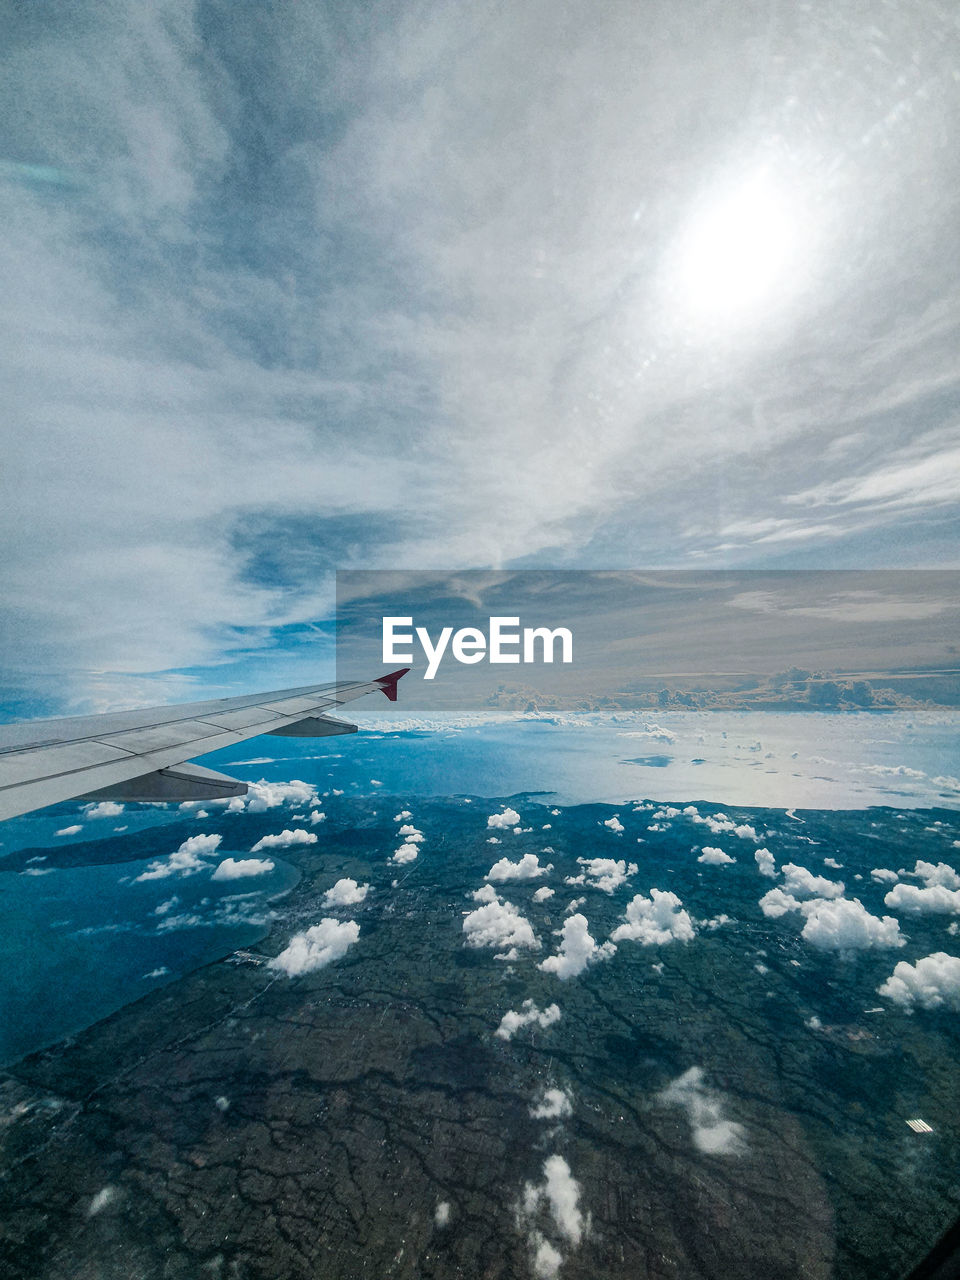 sky, cloud - sky, beauty in nature, scenics - nature, water, day, nature, tranquil scene, tranquility, sea, aerial view, flying, no people, transportation, airplane, horizon, non-urban scene, air vehicle, idyllic